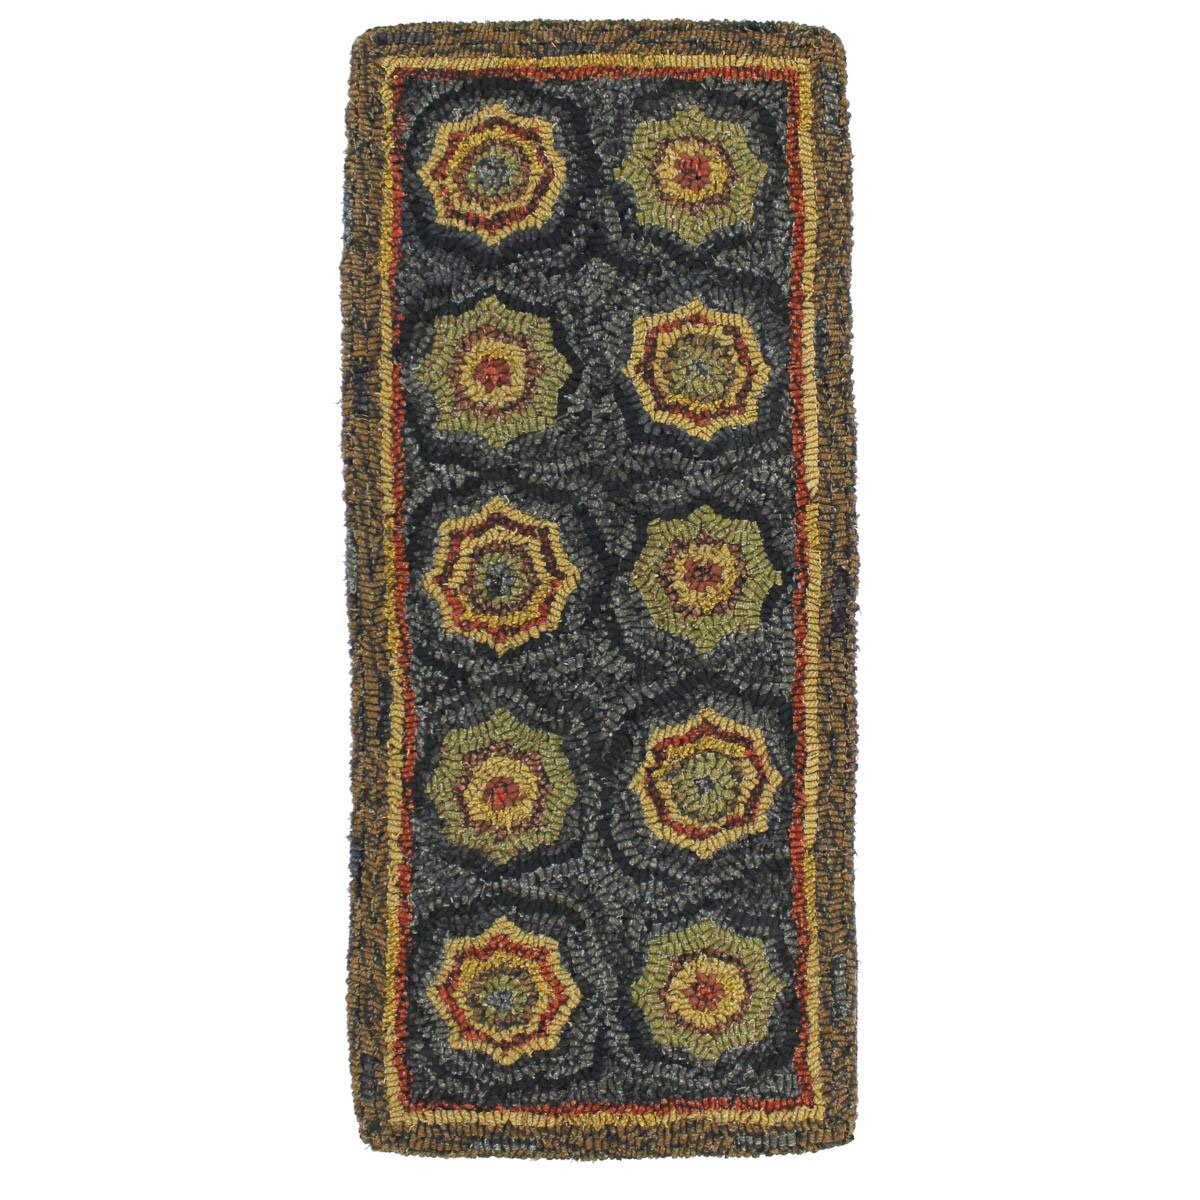 Homespice Decor Lilly Pad Hooked Table Runner Wayfair